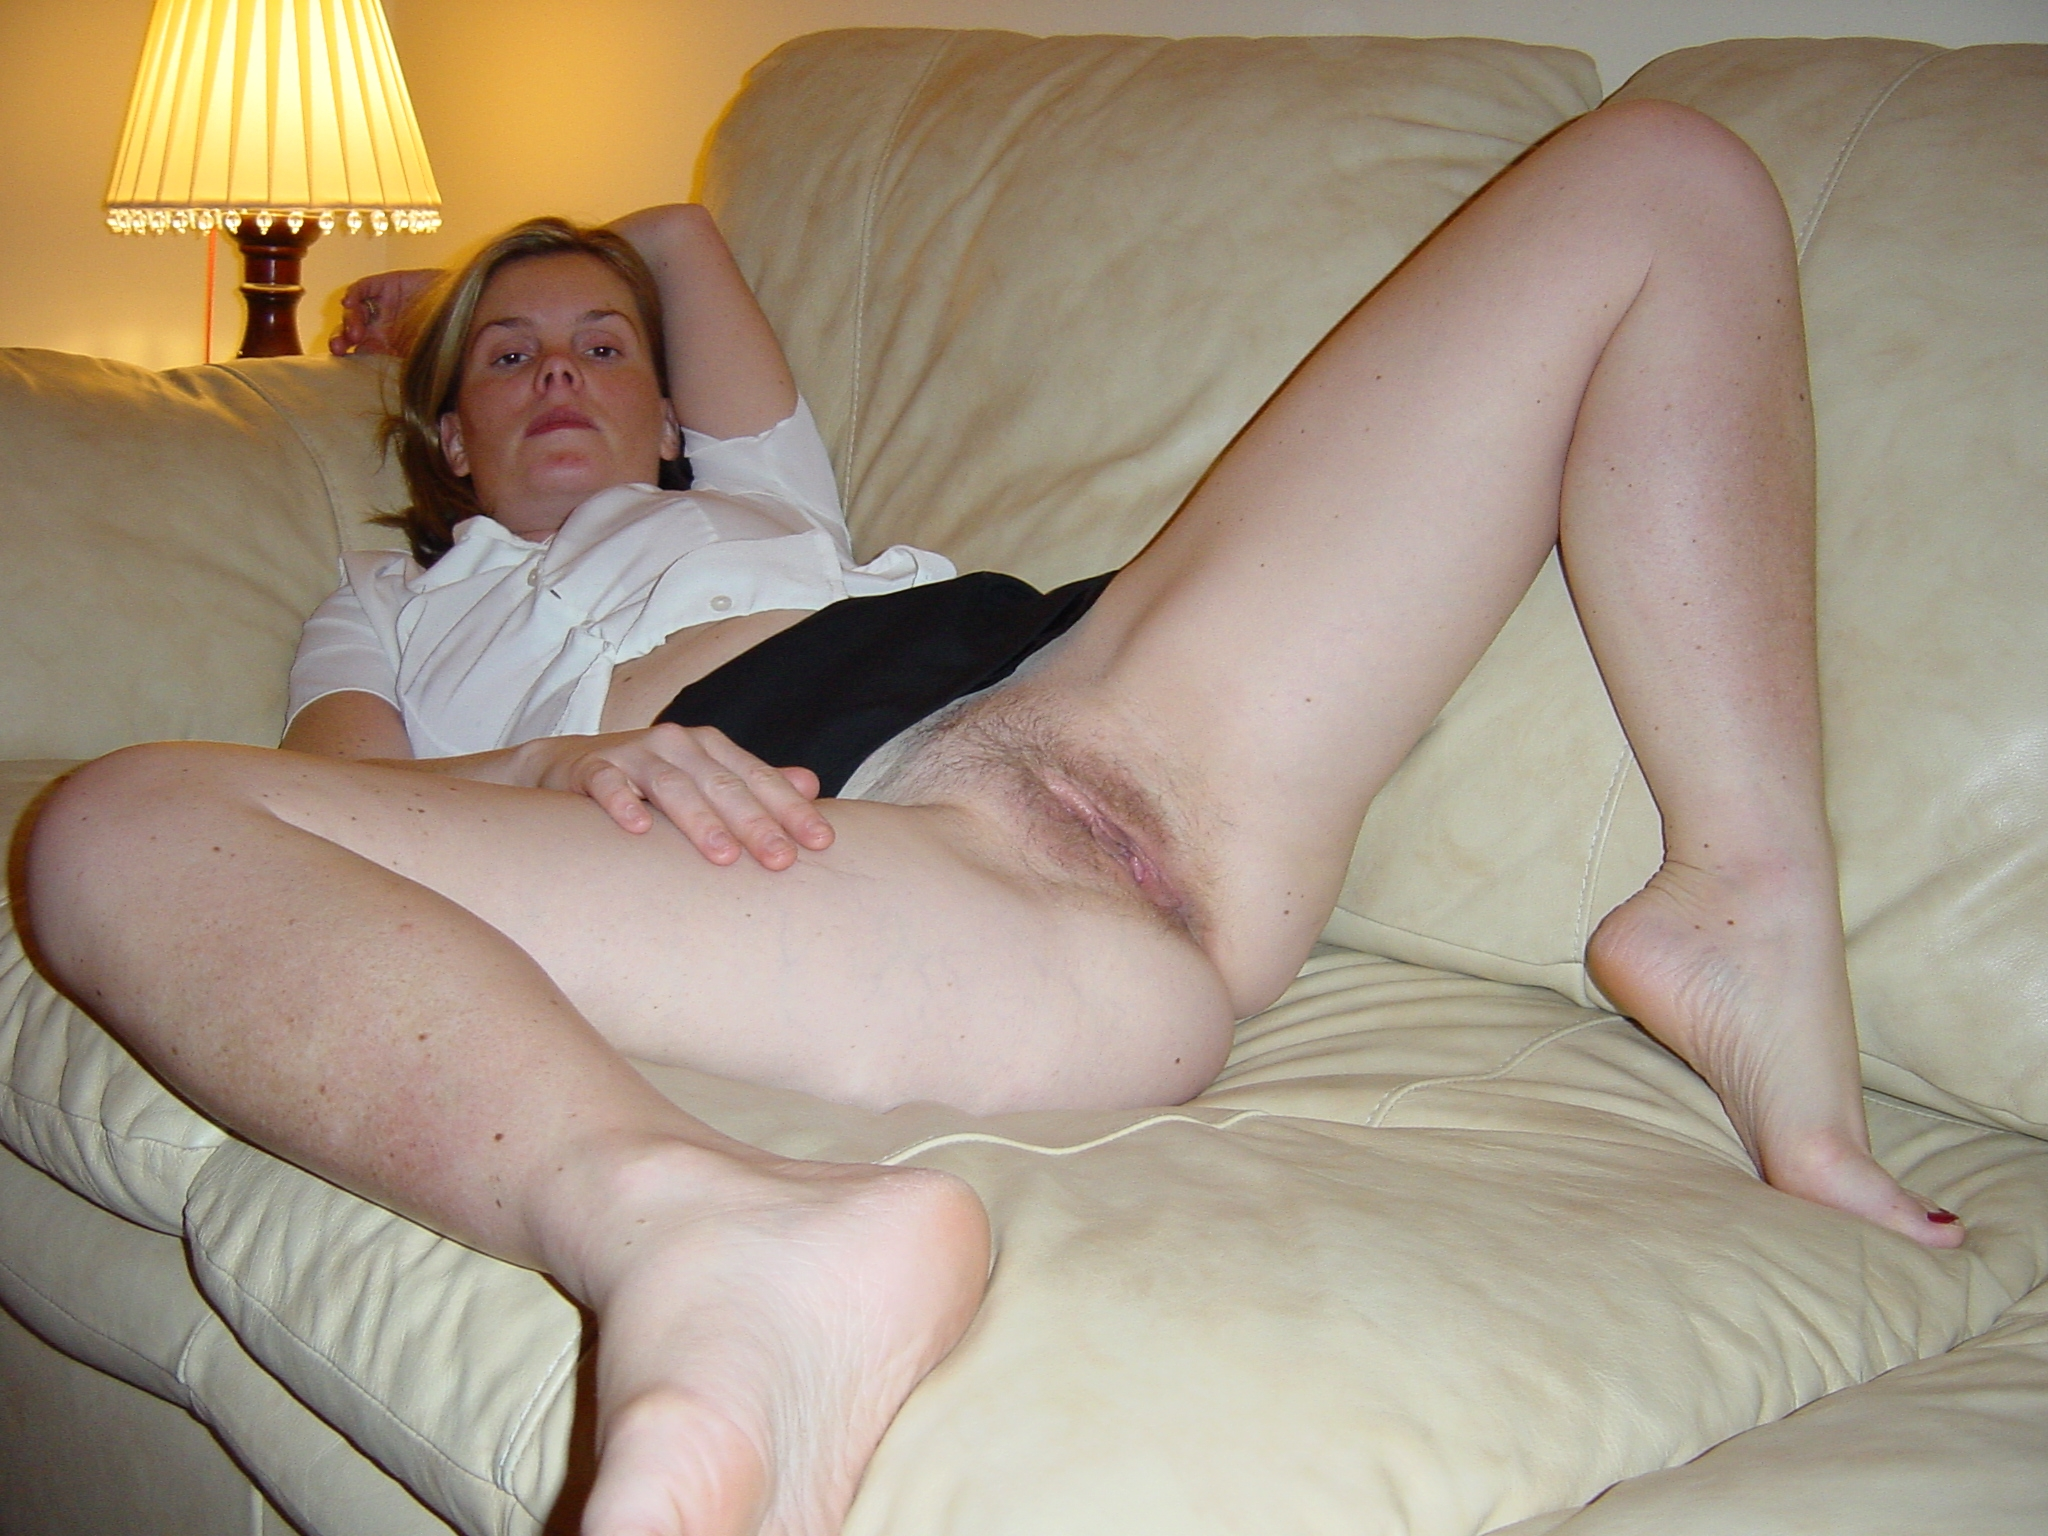 Aged german woman in anal sex video 3